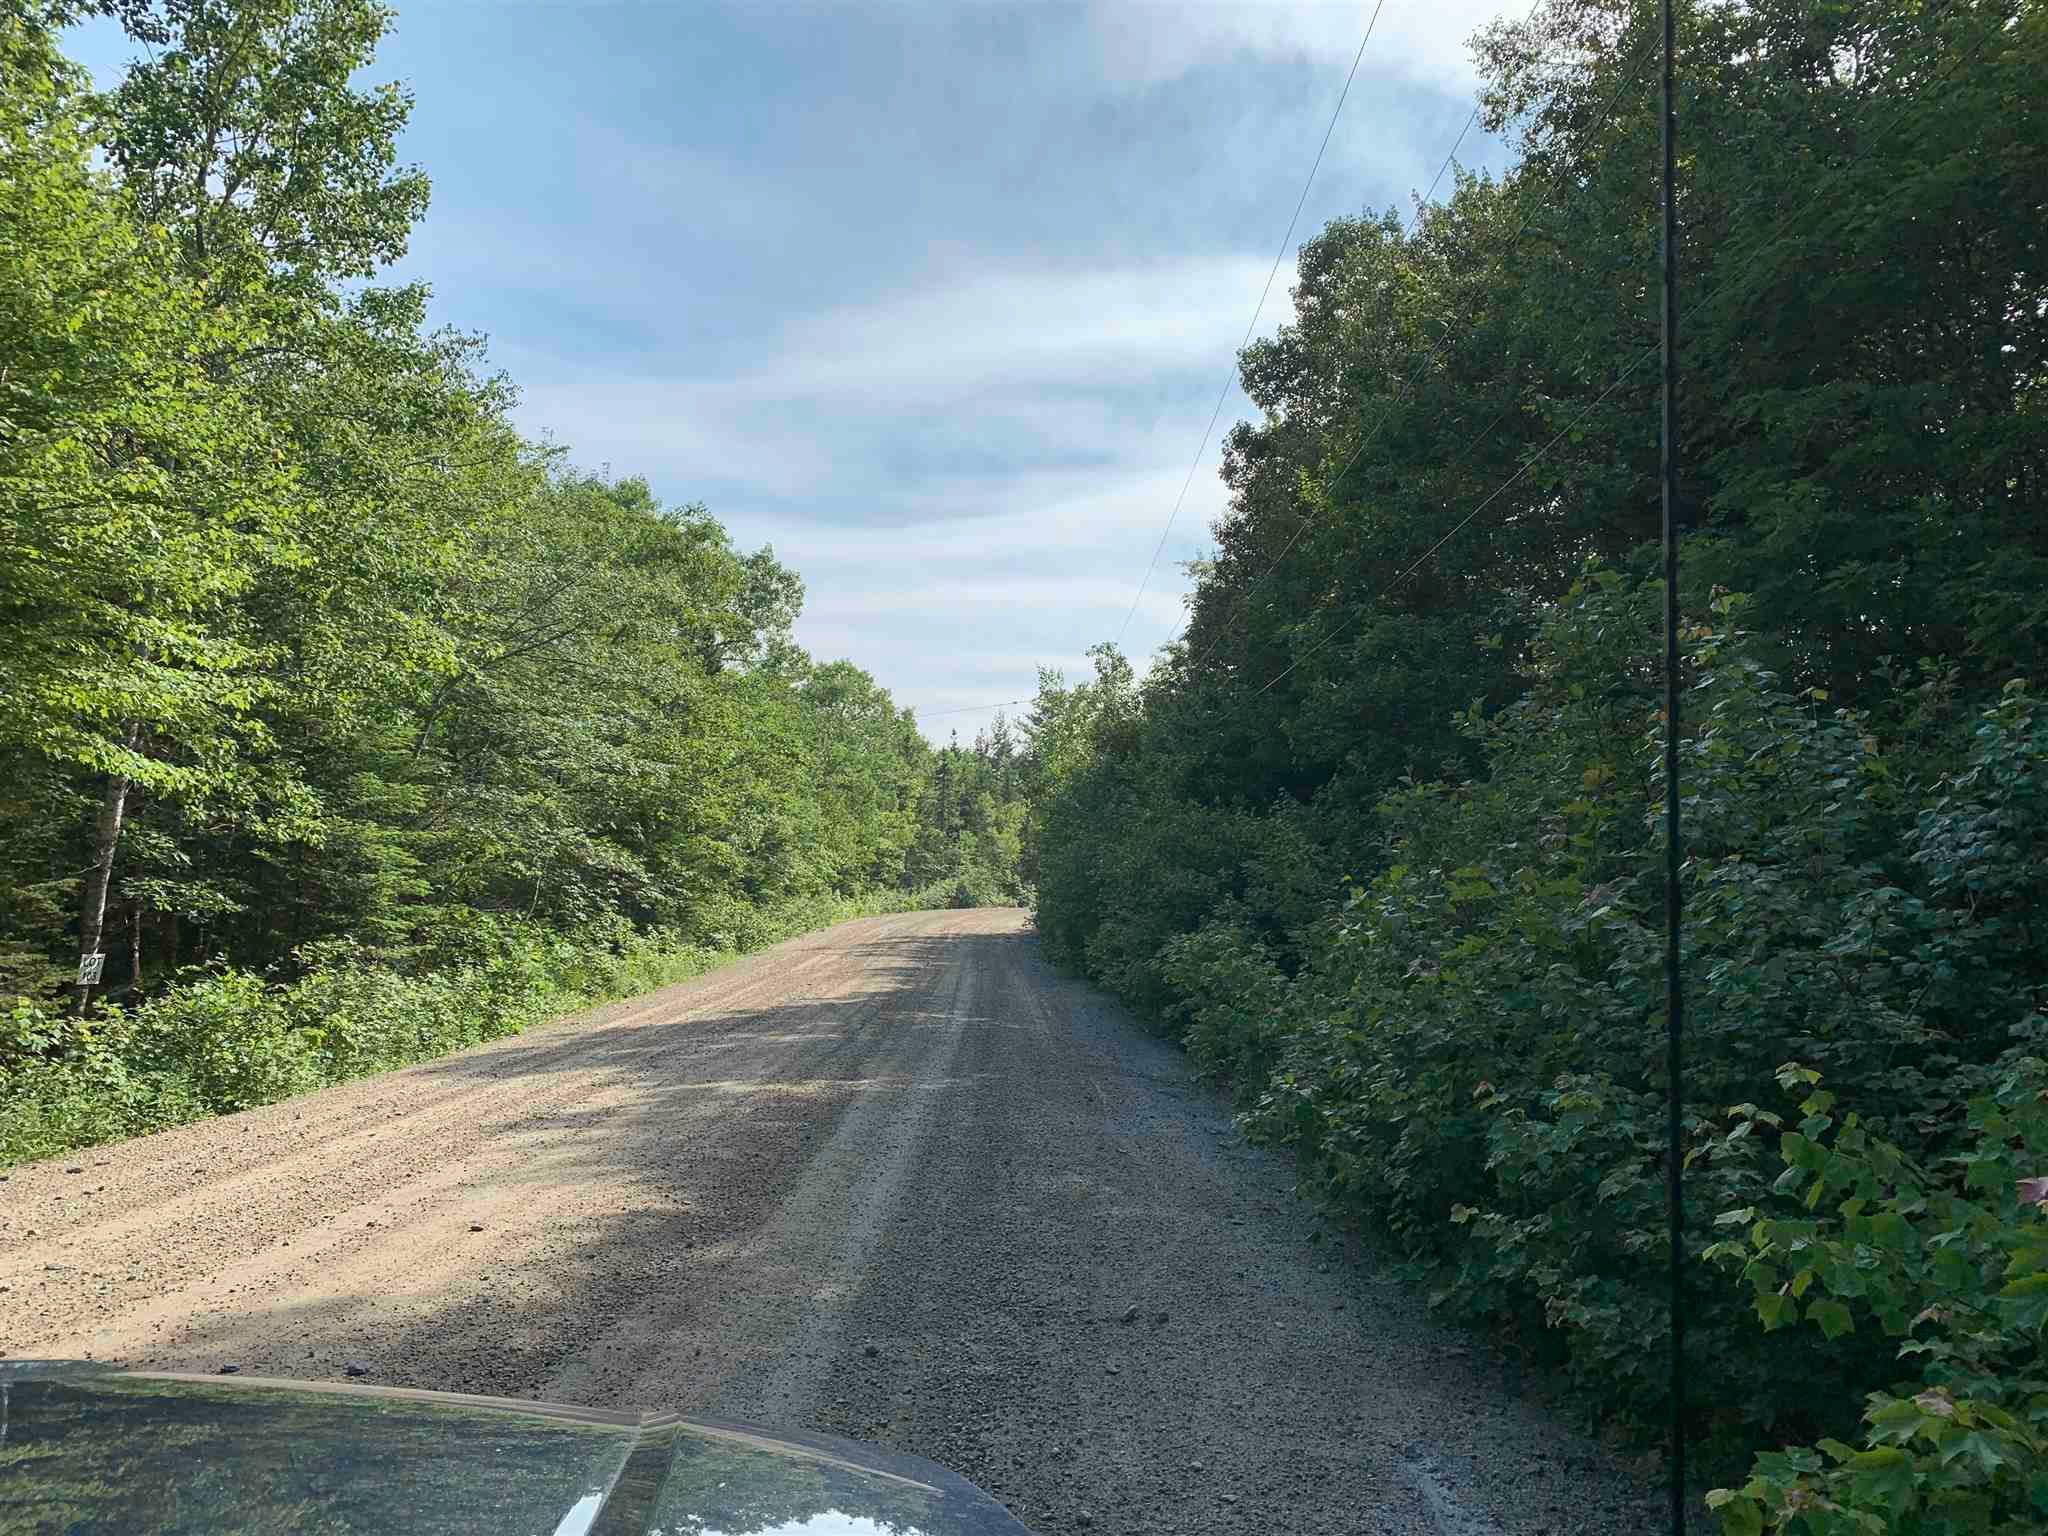 Main Photo: Lot 5 Mersey Road in East River: 405-Lunenburg County Vacant Land for sale (South Shore)  : MLS®# 202117014